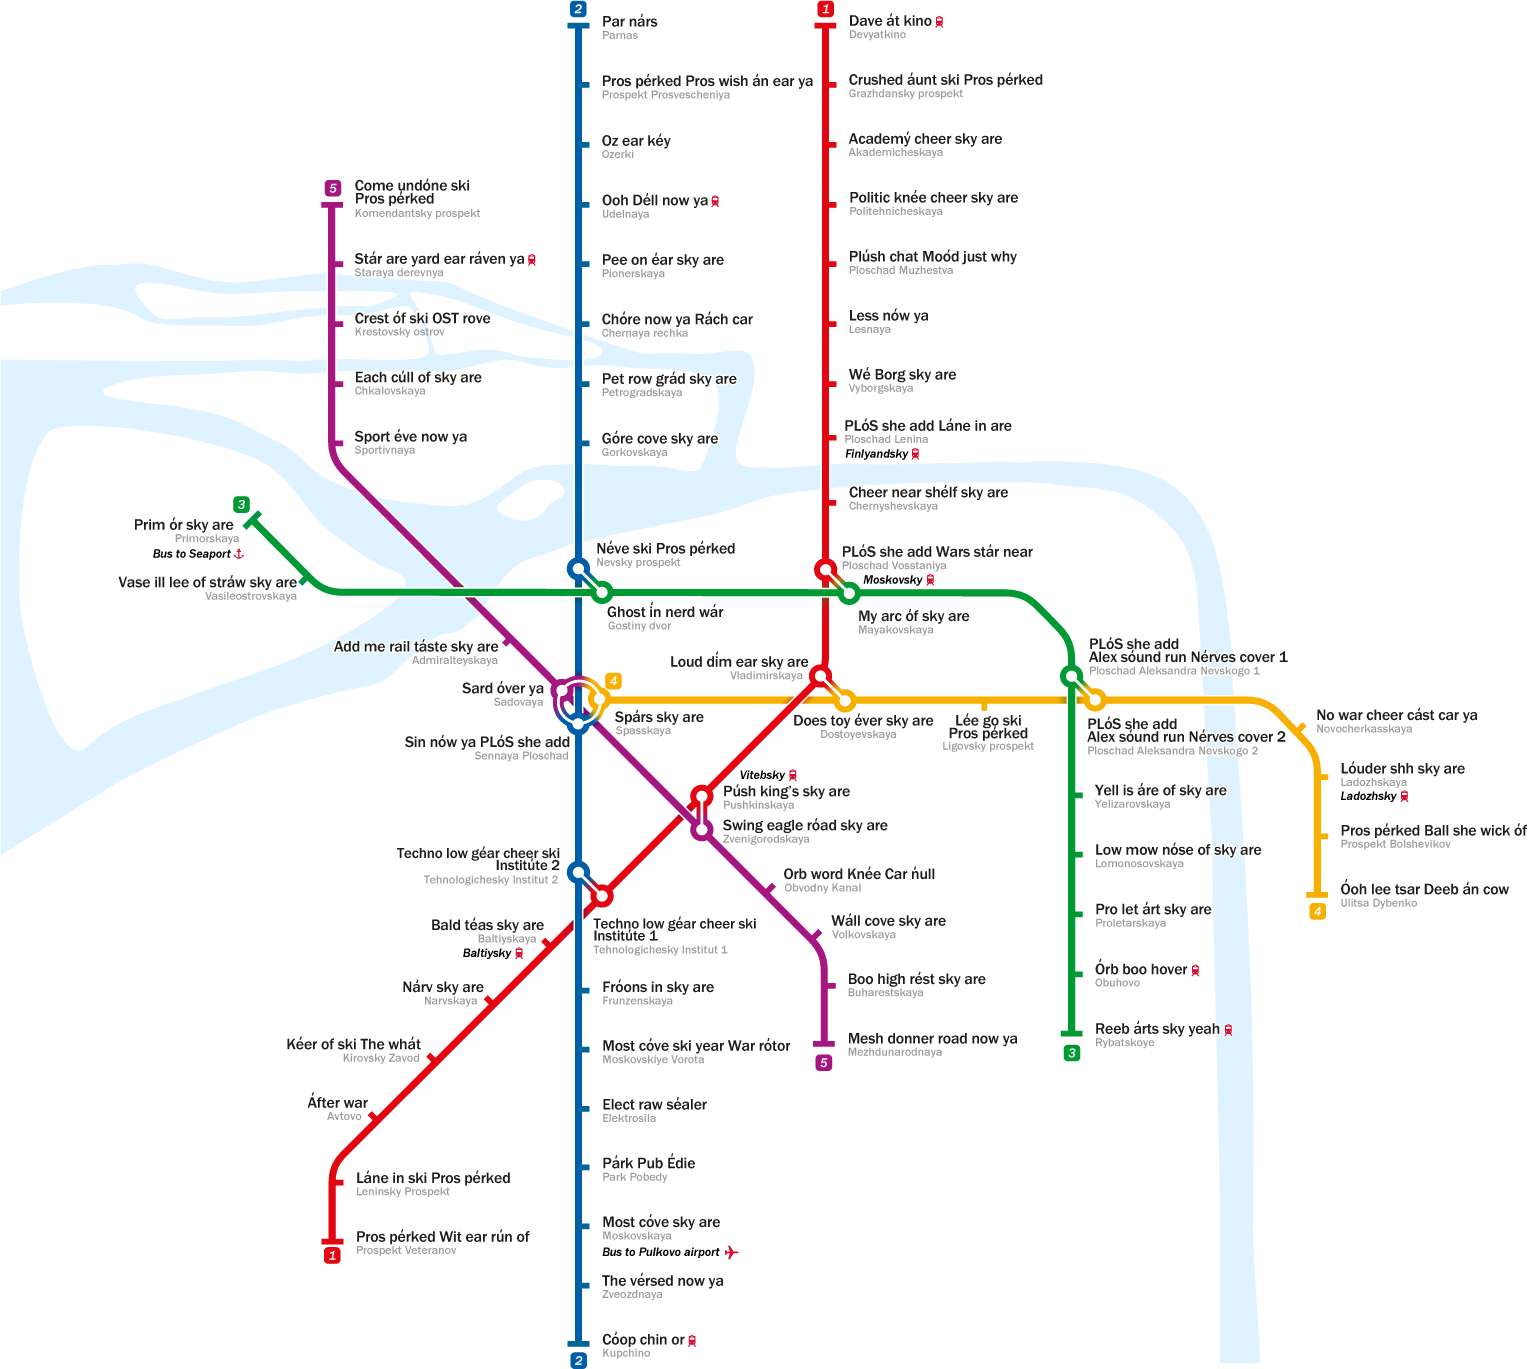 Translating the St Petersburg Metro Underground map for the